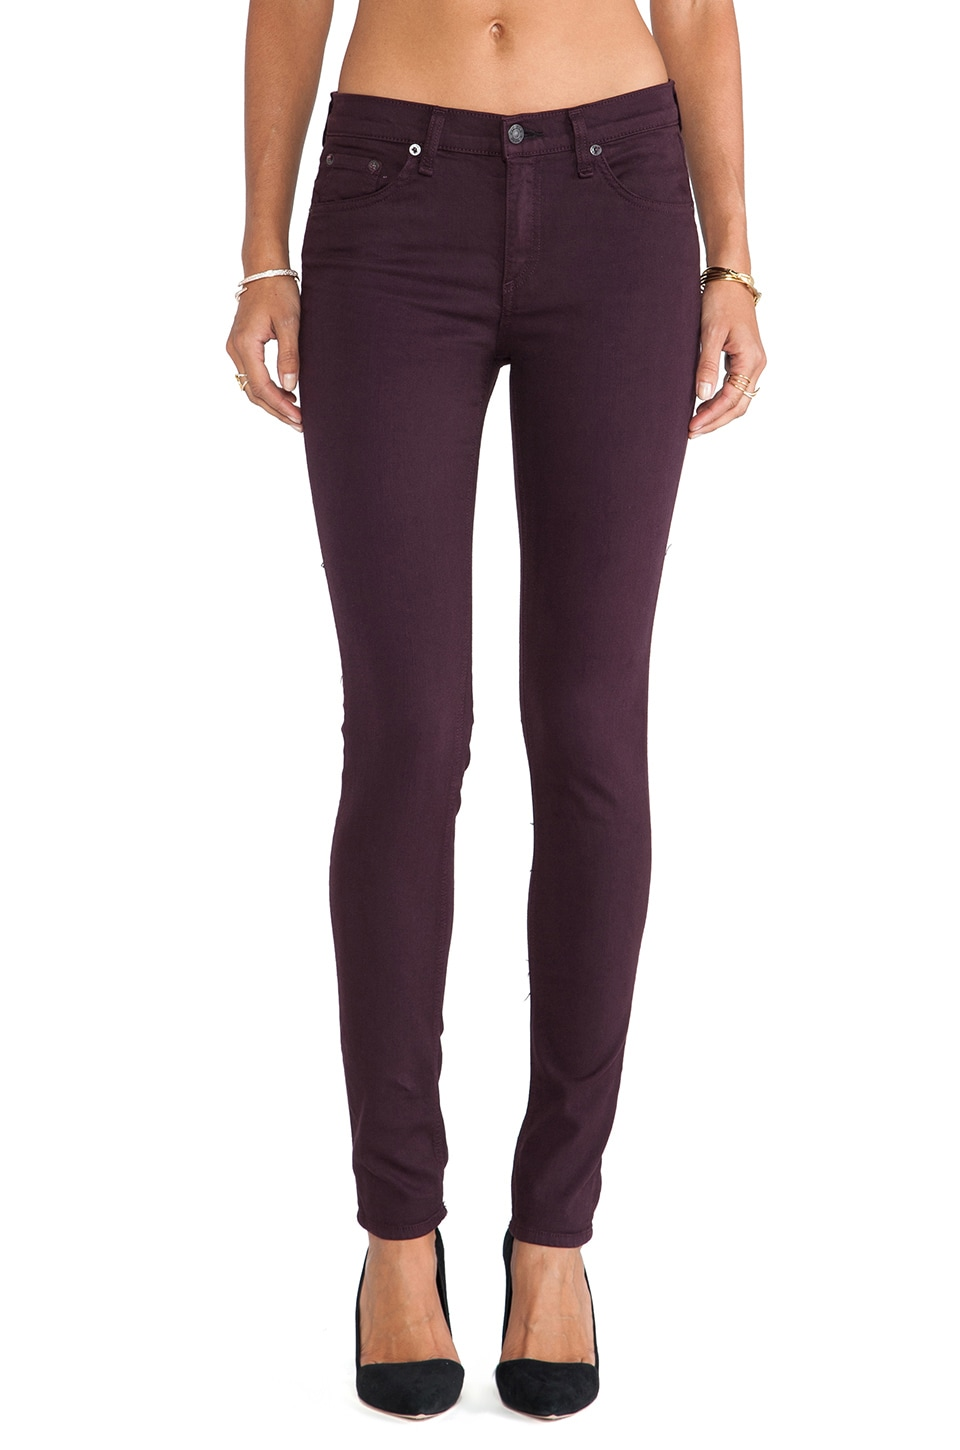 rag & bone/JEAN The Skinny in Distressed Wine